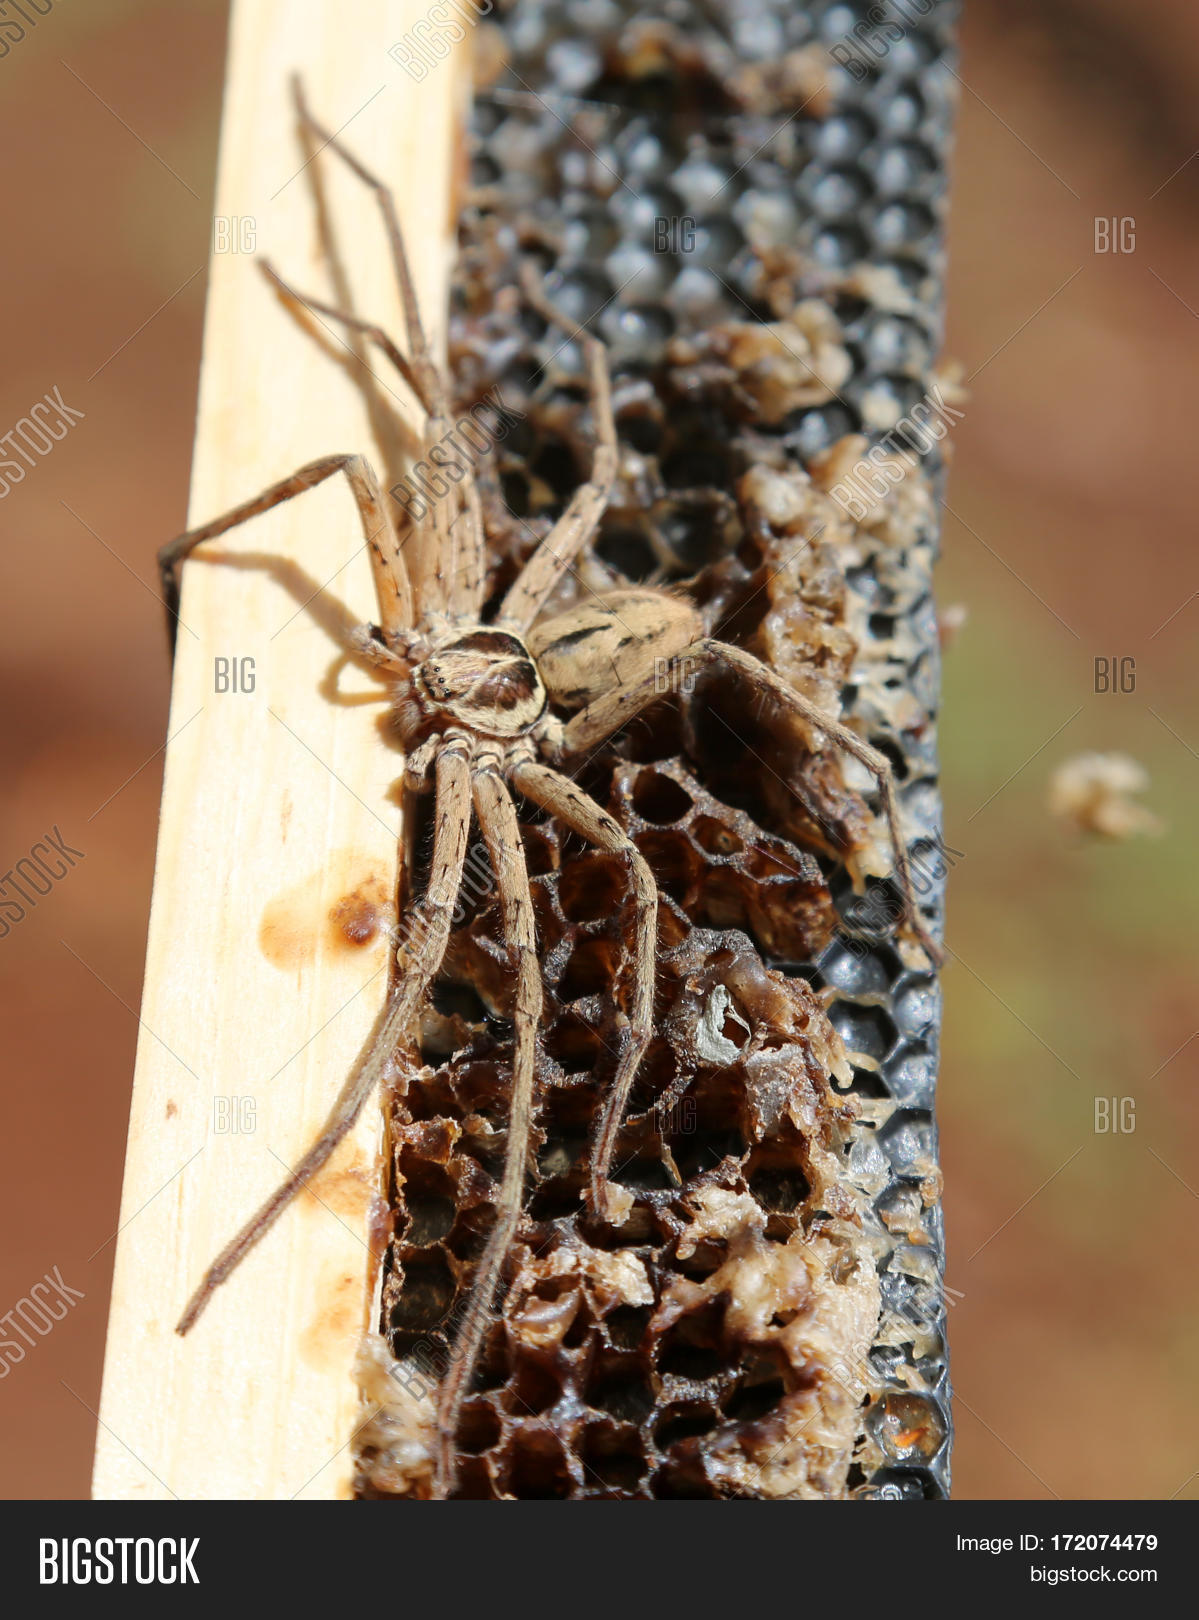 Cane Spider Aka Image Photo Free Trial Bigstock